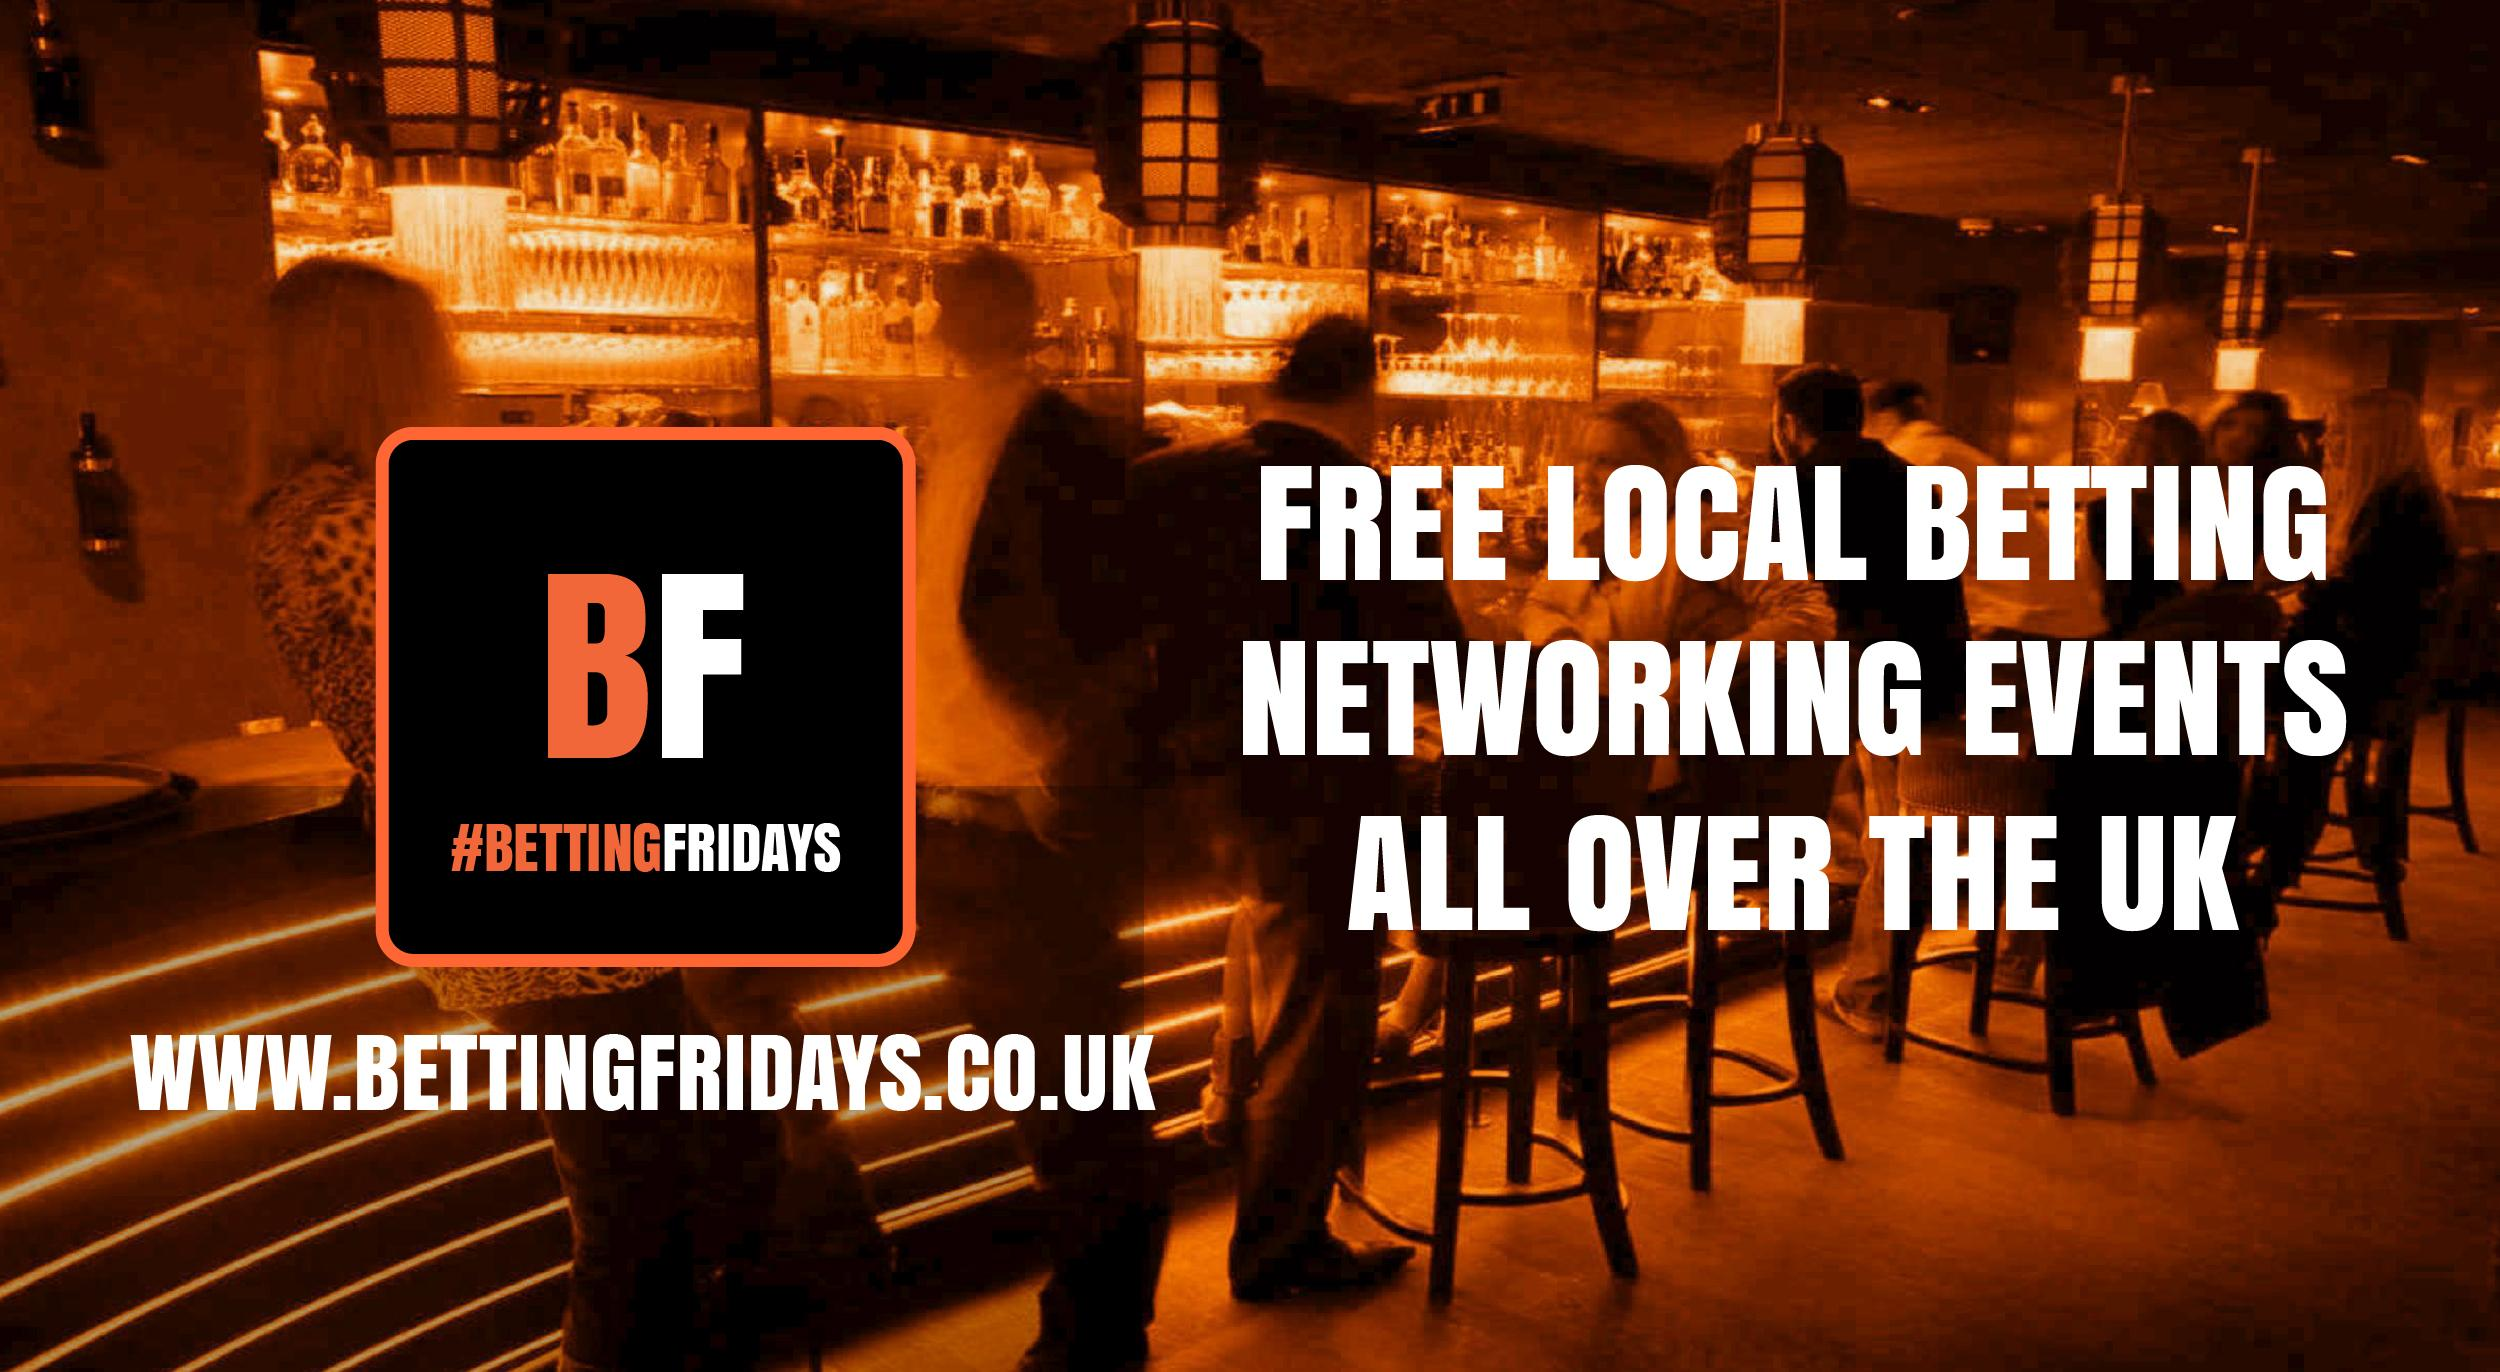 Betting Fridays! Free betting networking event in Stretford